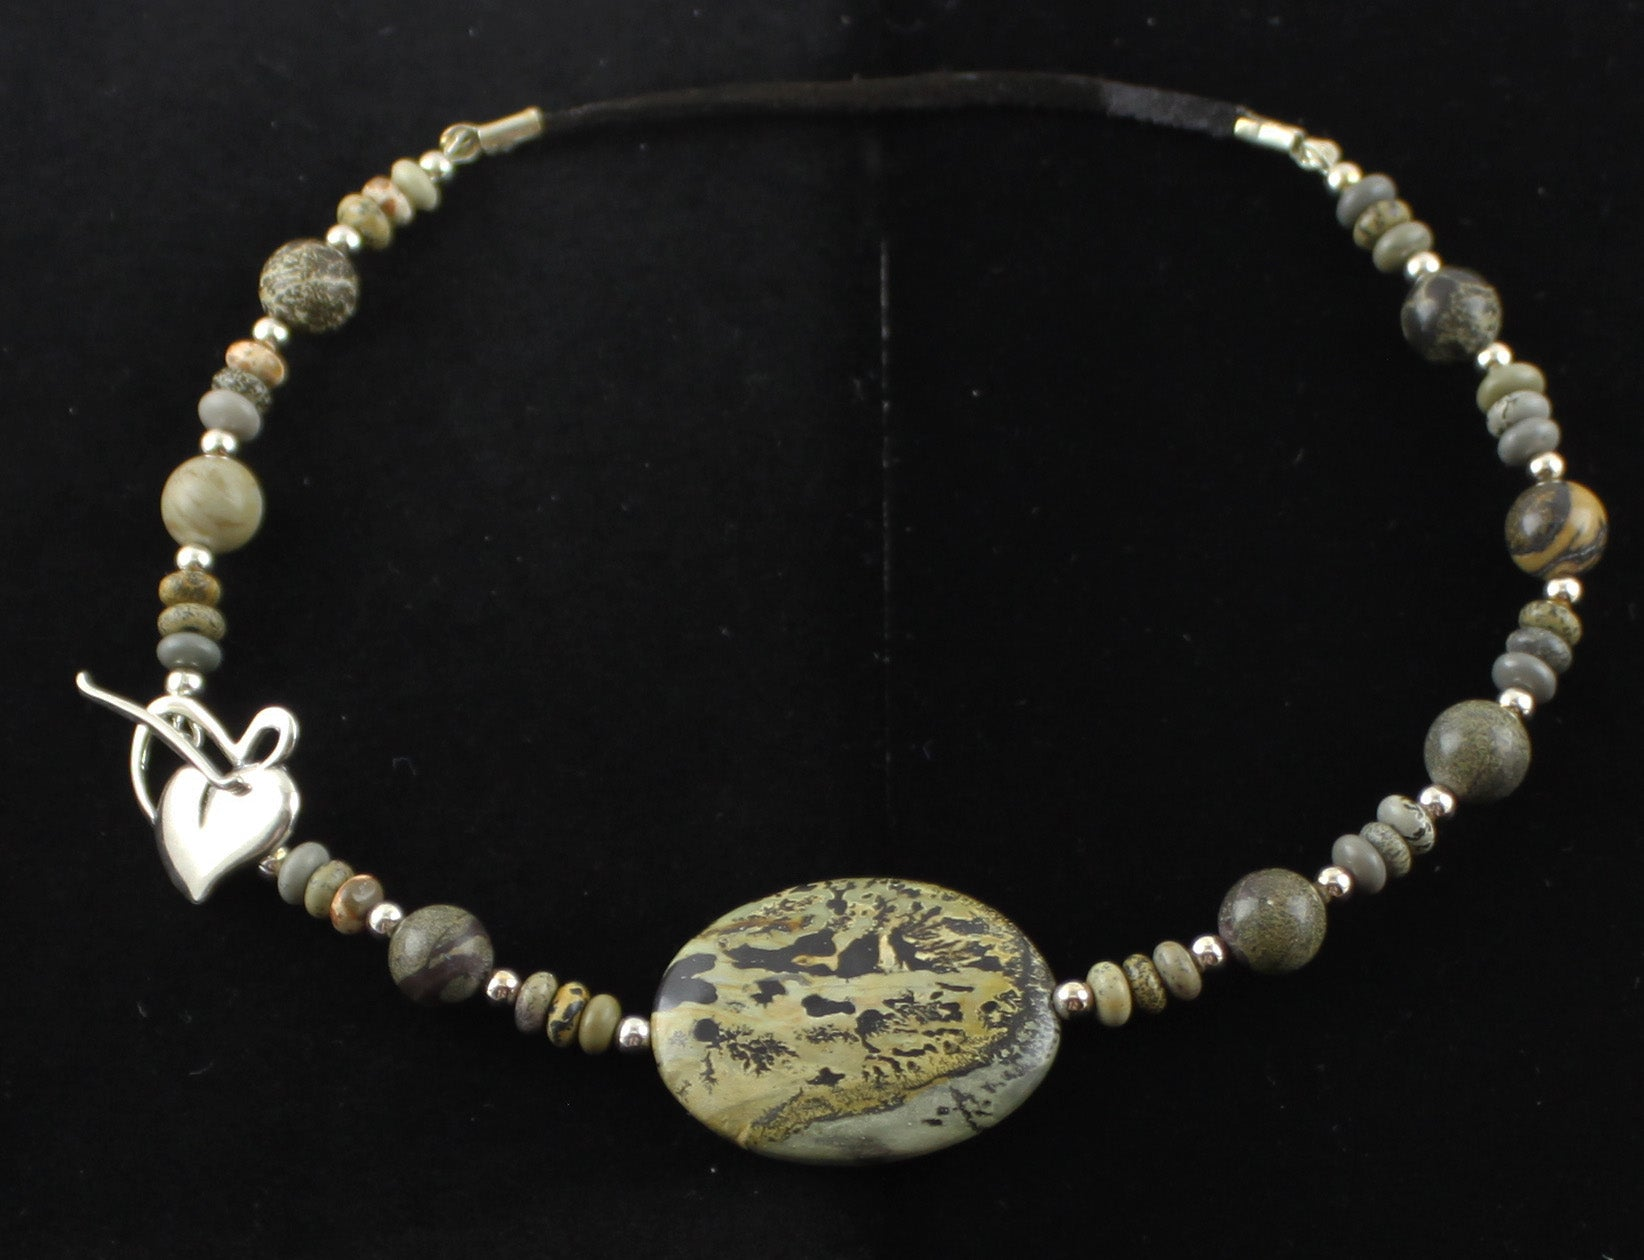 Artistic Stone Sterling Silver & Leather Necklace